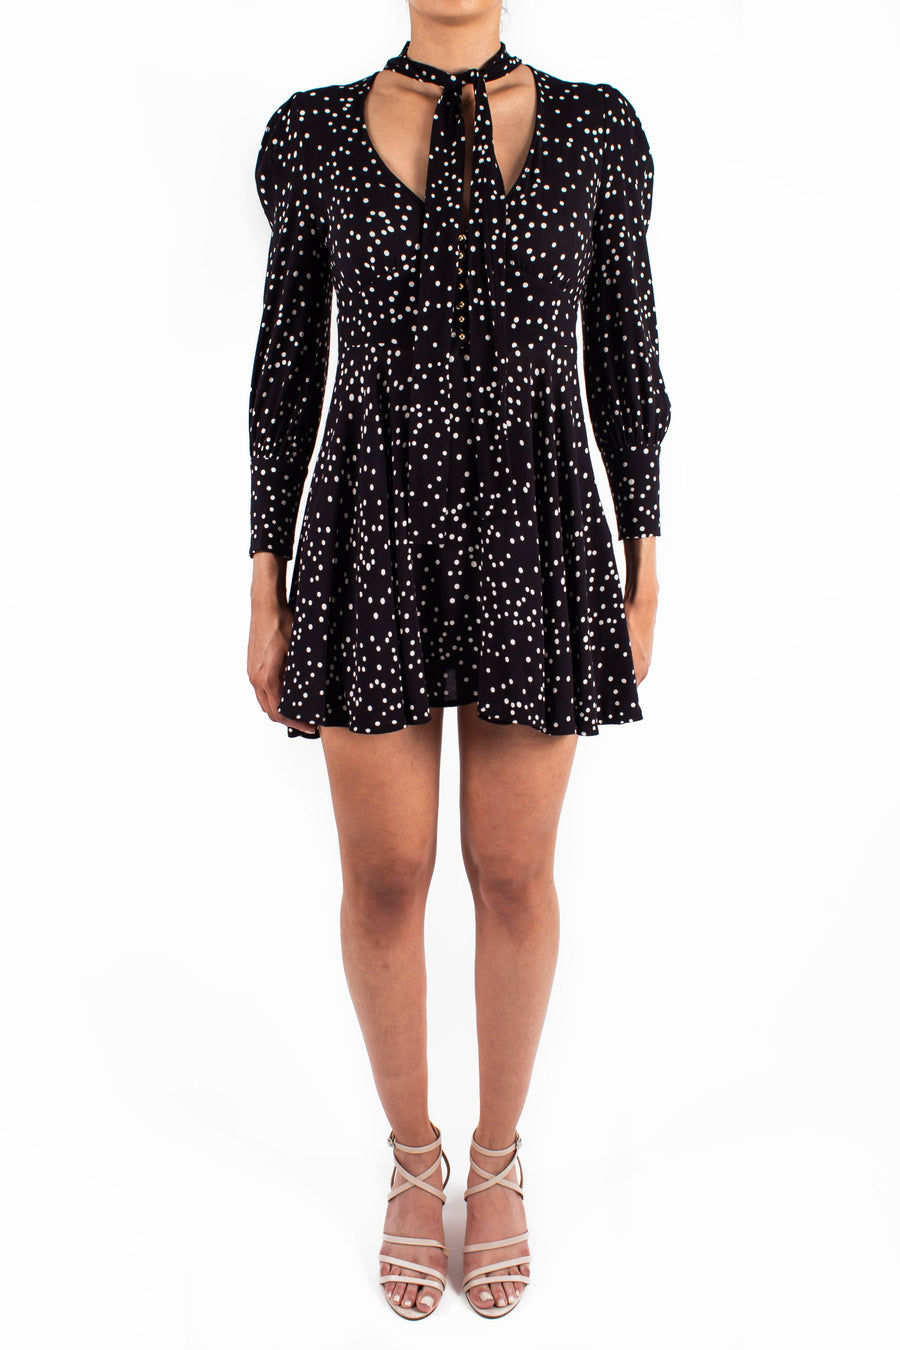 Empire Swing Dress Black Confetti Front